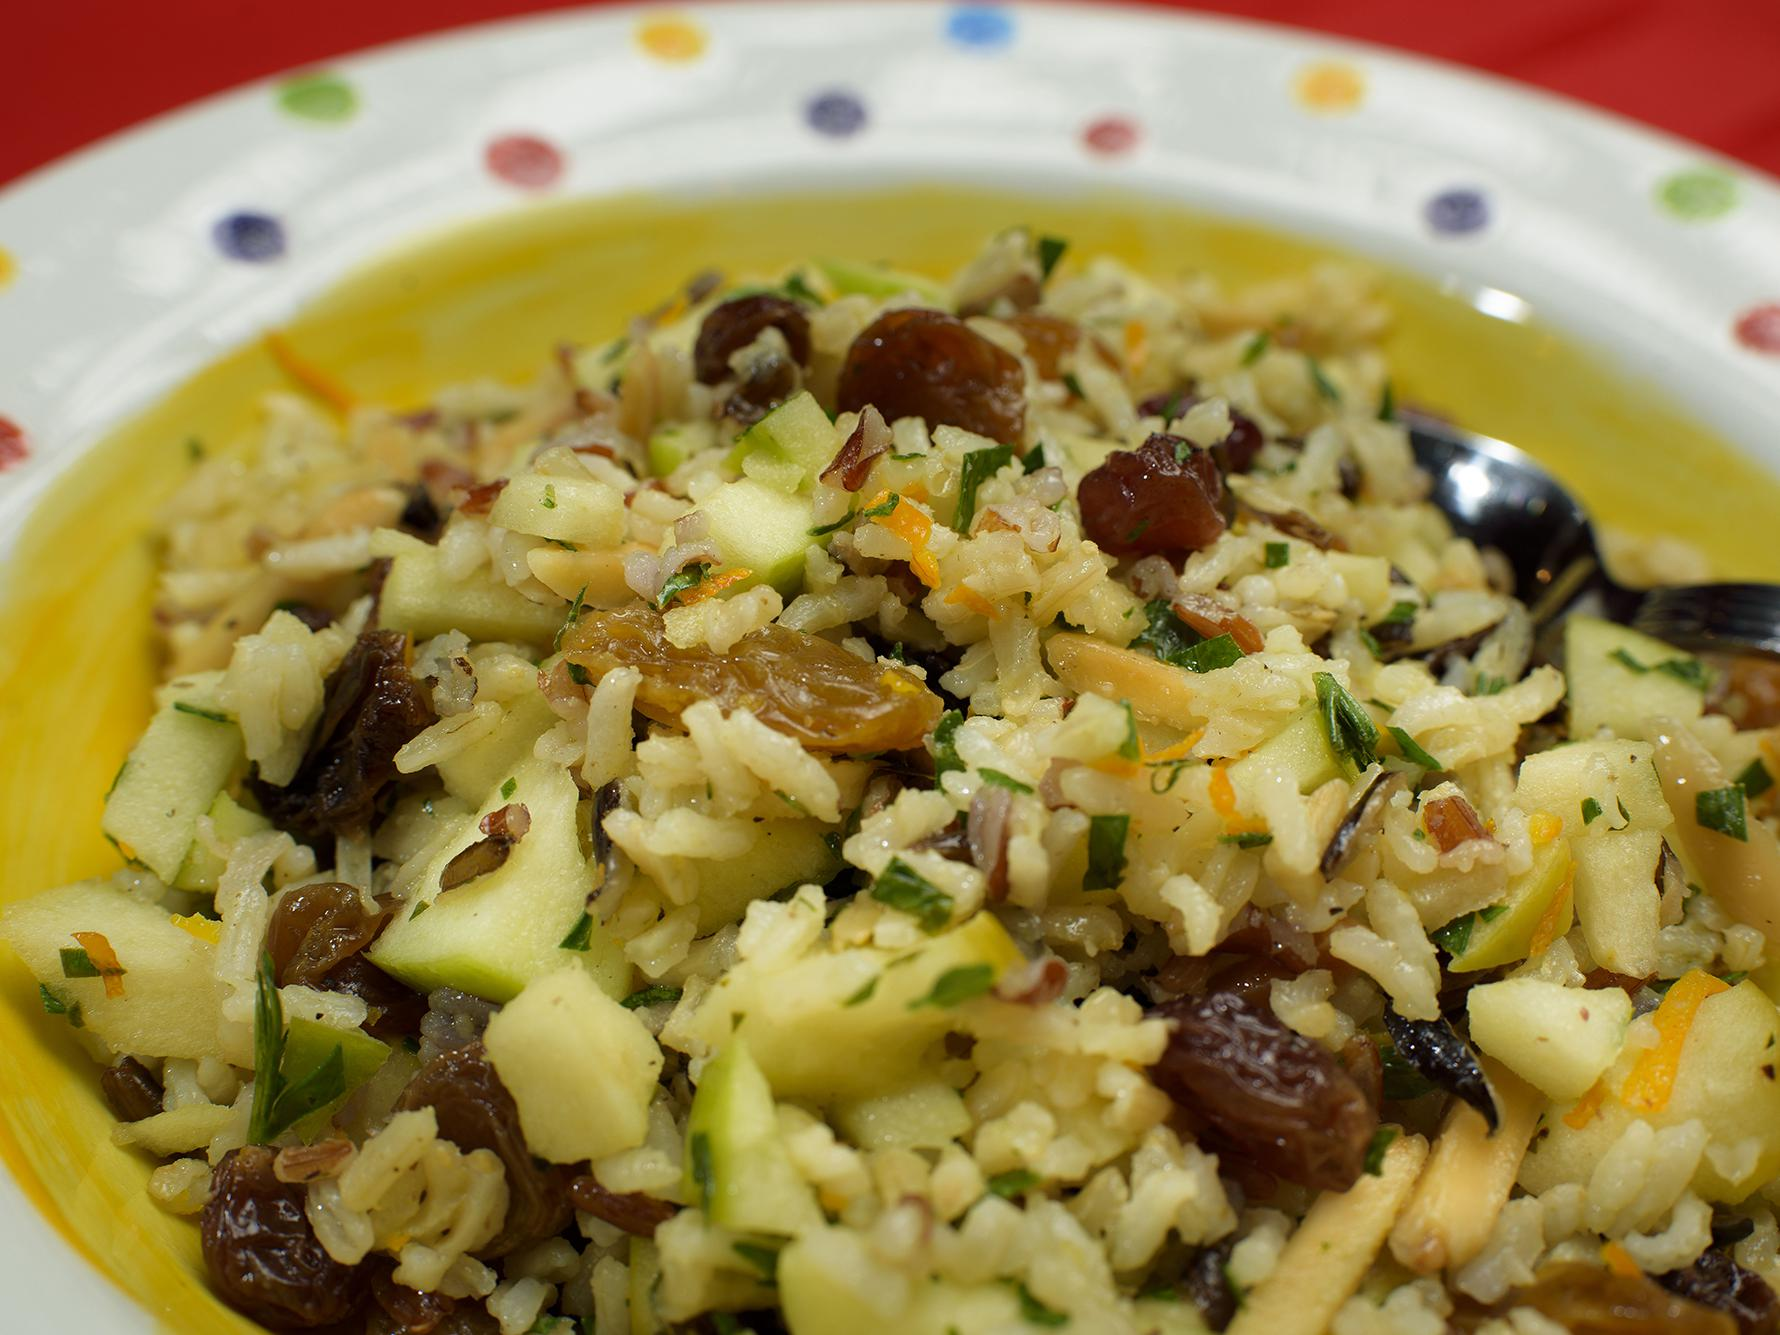 A mixture of rice, apples, raisins and almonds is displayed in a colorful bowl.